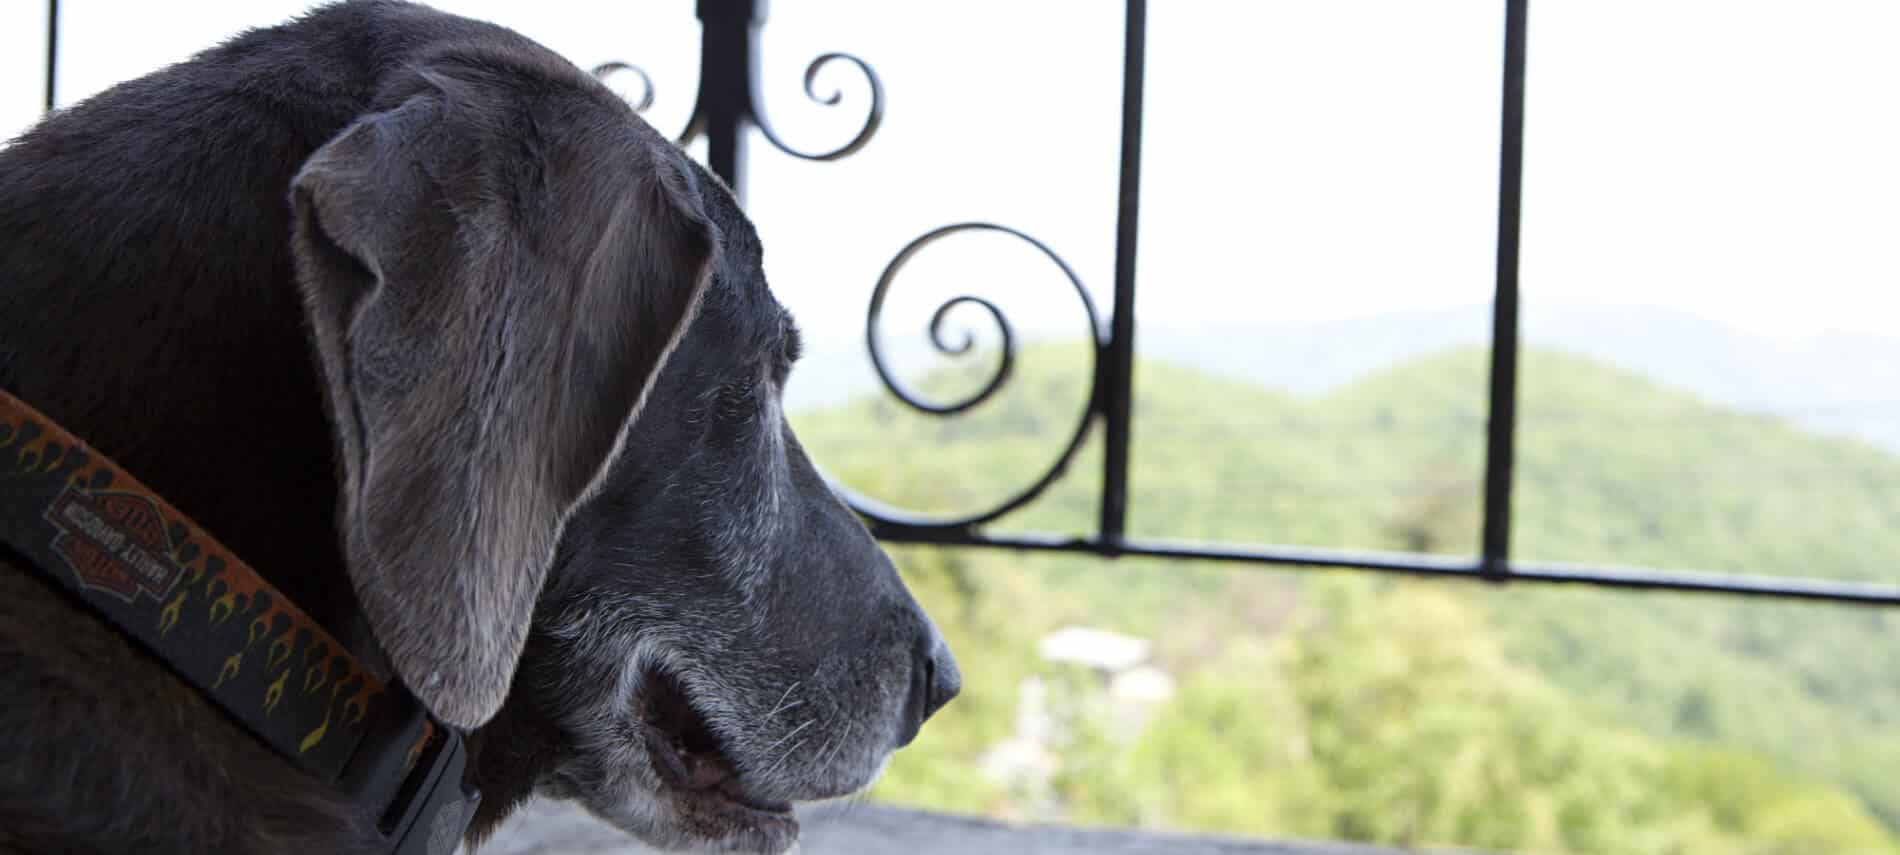 close up view of a dog looking through a metal balcony railing wearing a Harley Davidson collar